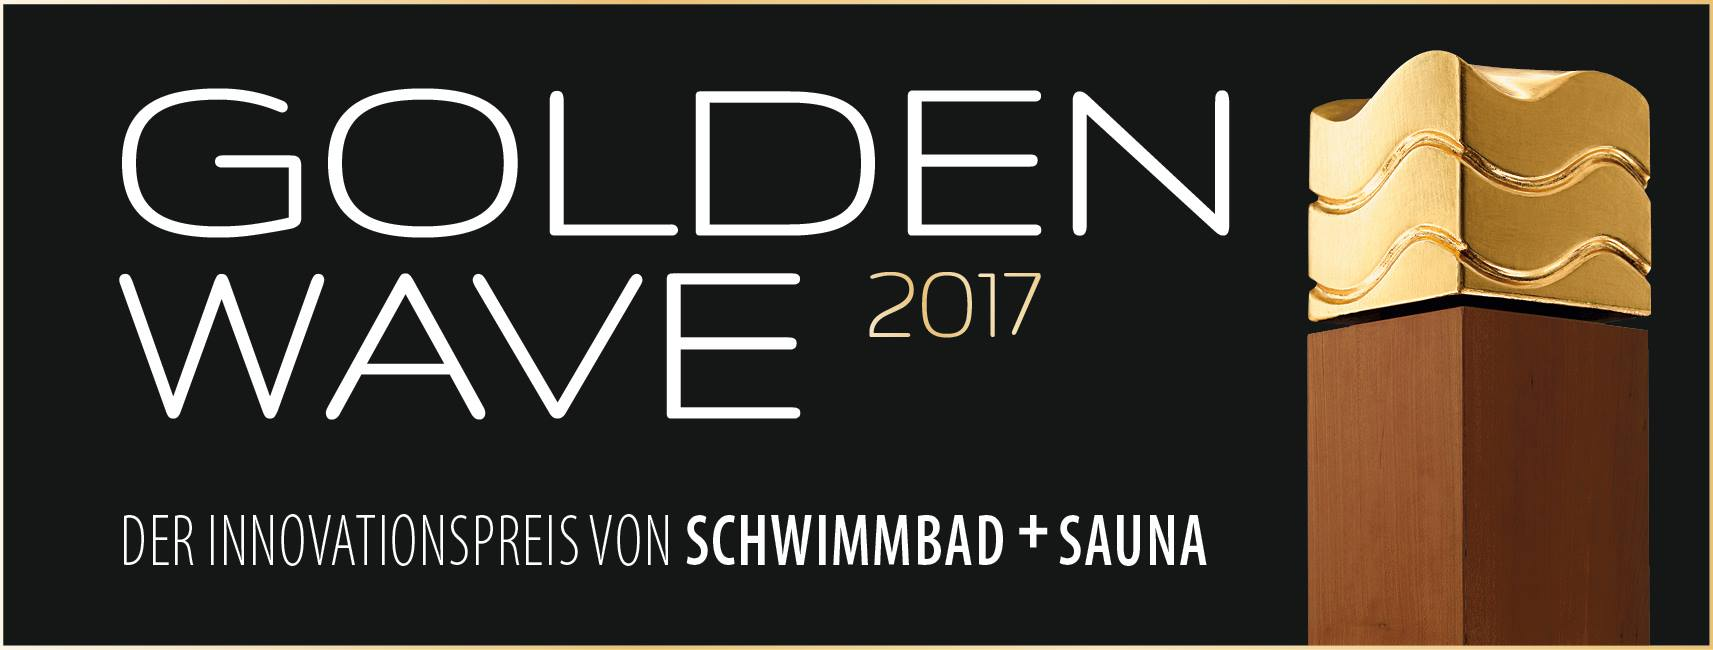 The Golden Wave 2017 - The innovation prize of Schwimmbad + Sauna